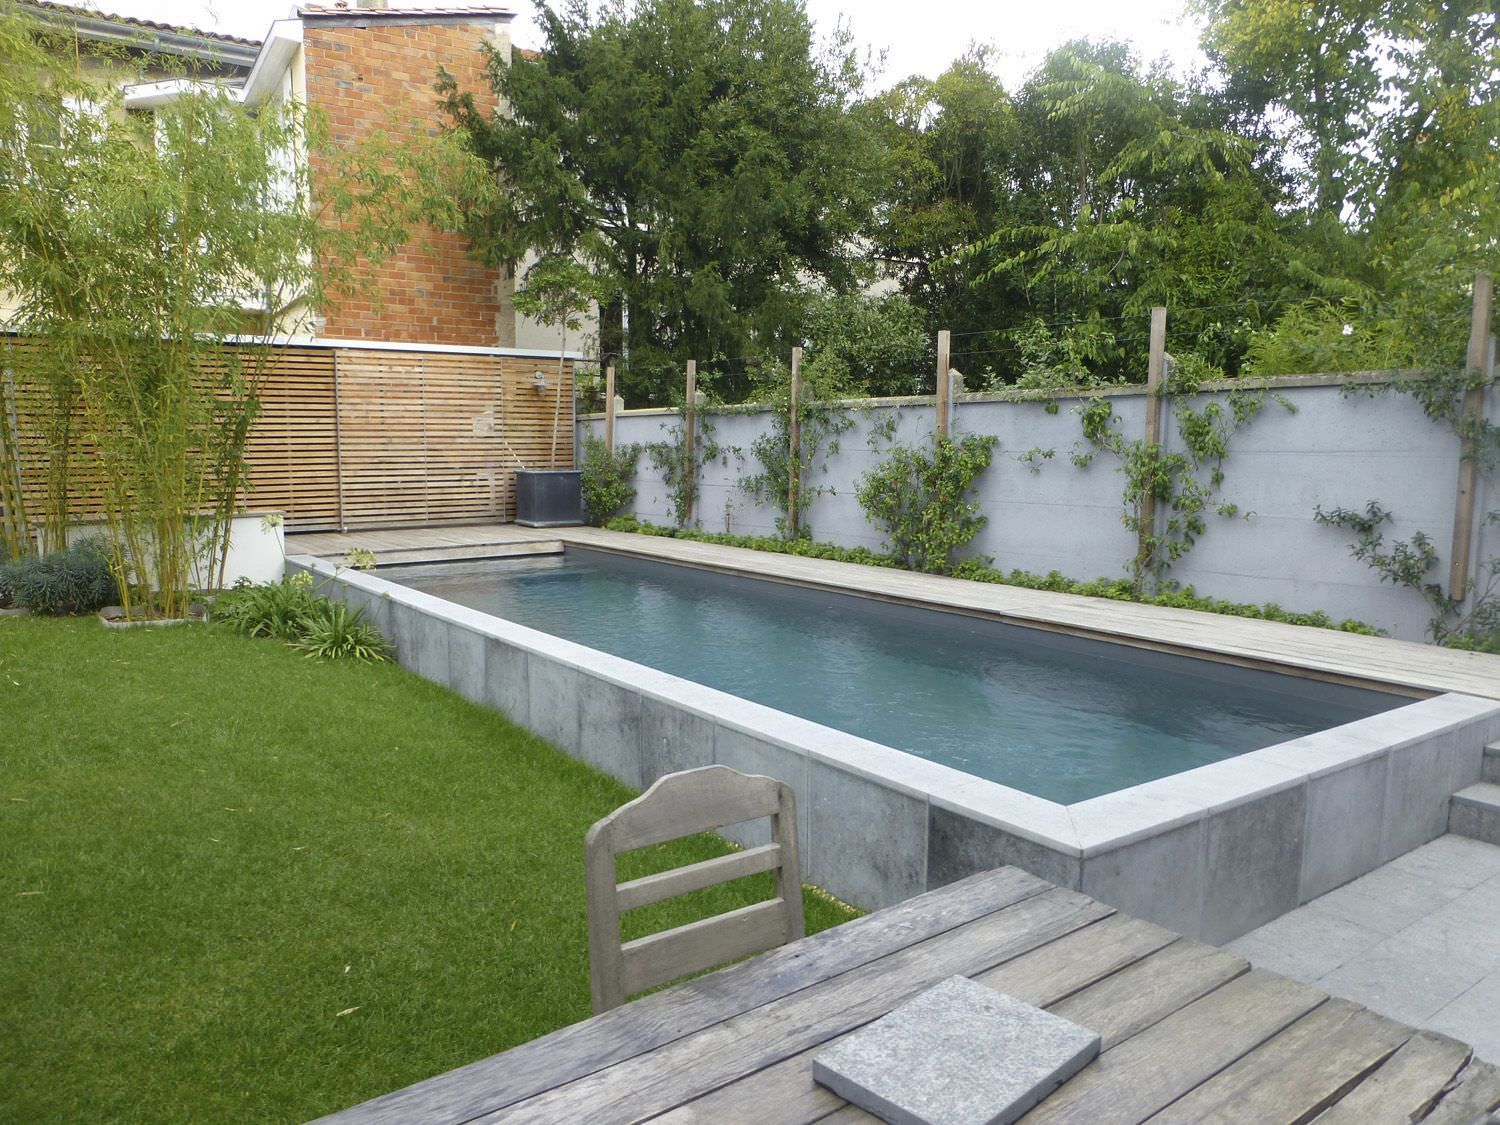 Piscine semi enterr e en b ton plouf pinterest for Piscine semi enterree